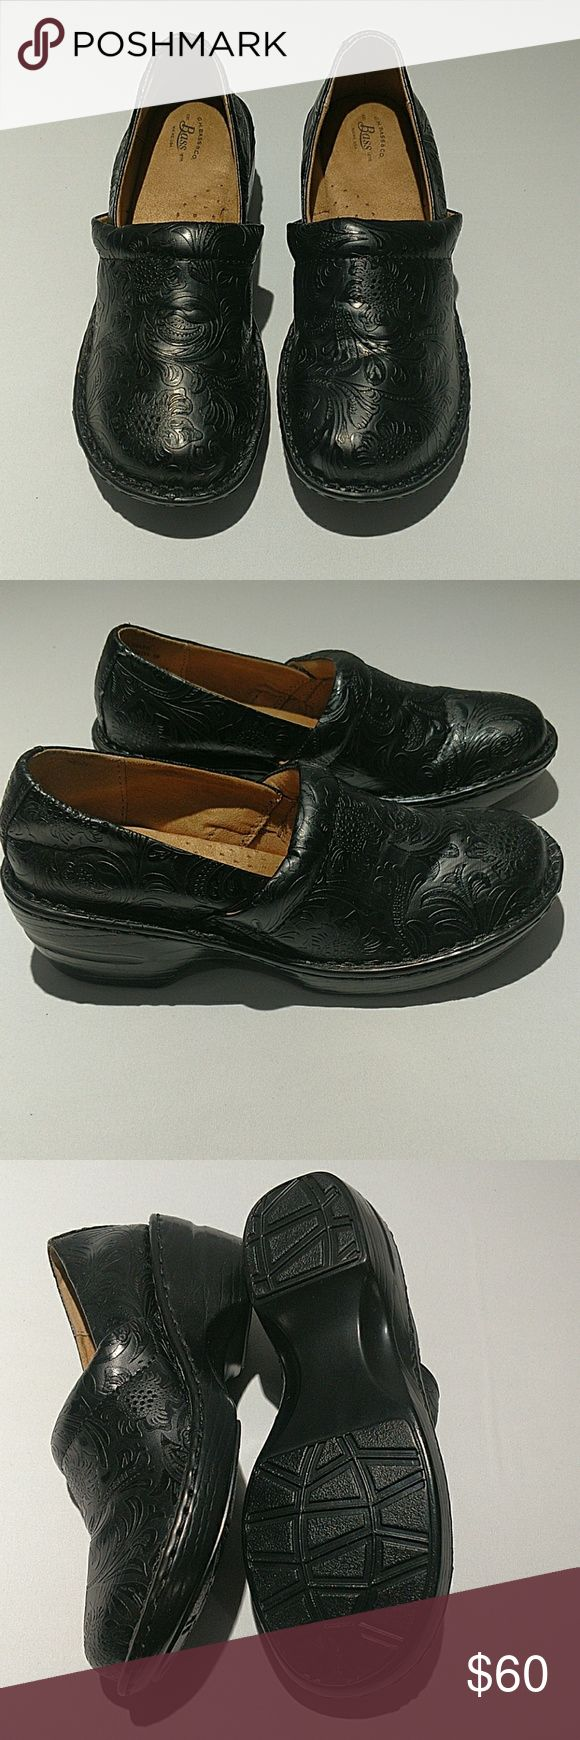 WOMAN'S BASS SHOES- BLACK WOMAN'S BASS SHOES. SHEENA BLACK PATTERN. SIZE 8 M. BLACK. BRAND NEW, NEVER WORN. RETAILS OVER $85! Bass Shoes Mules & Clogs